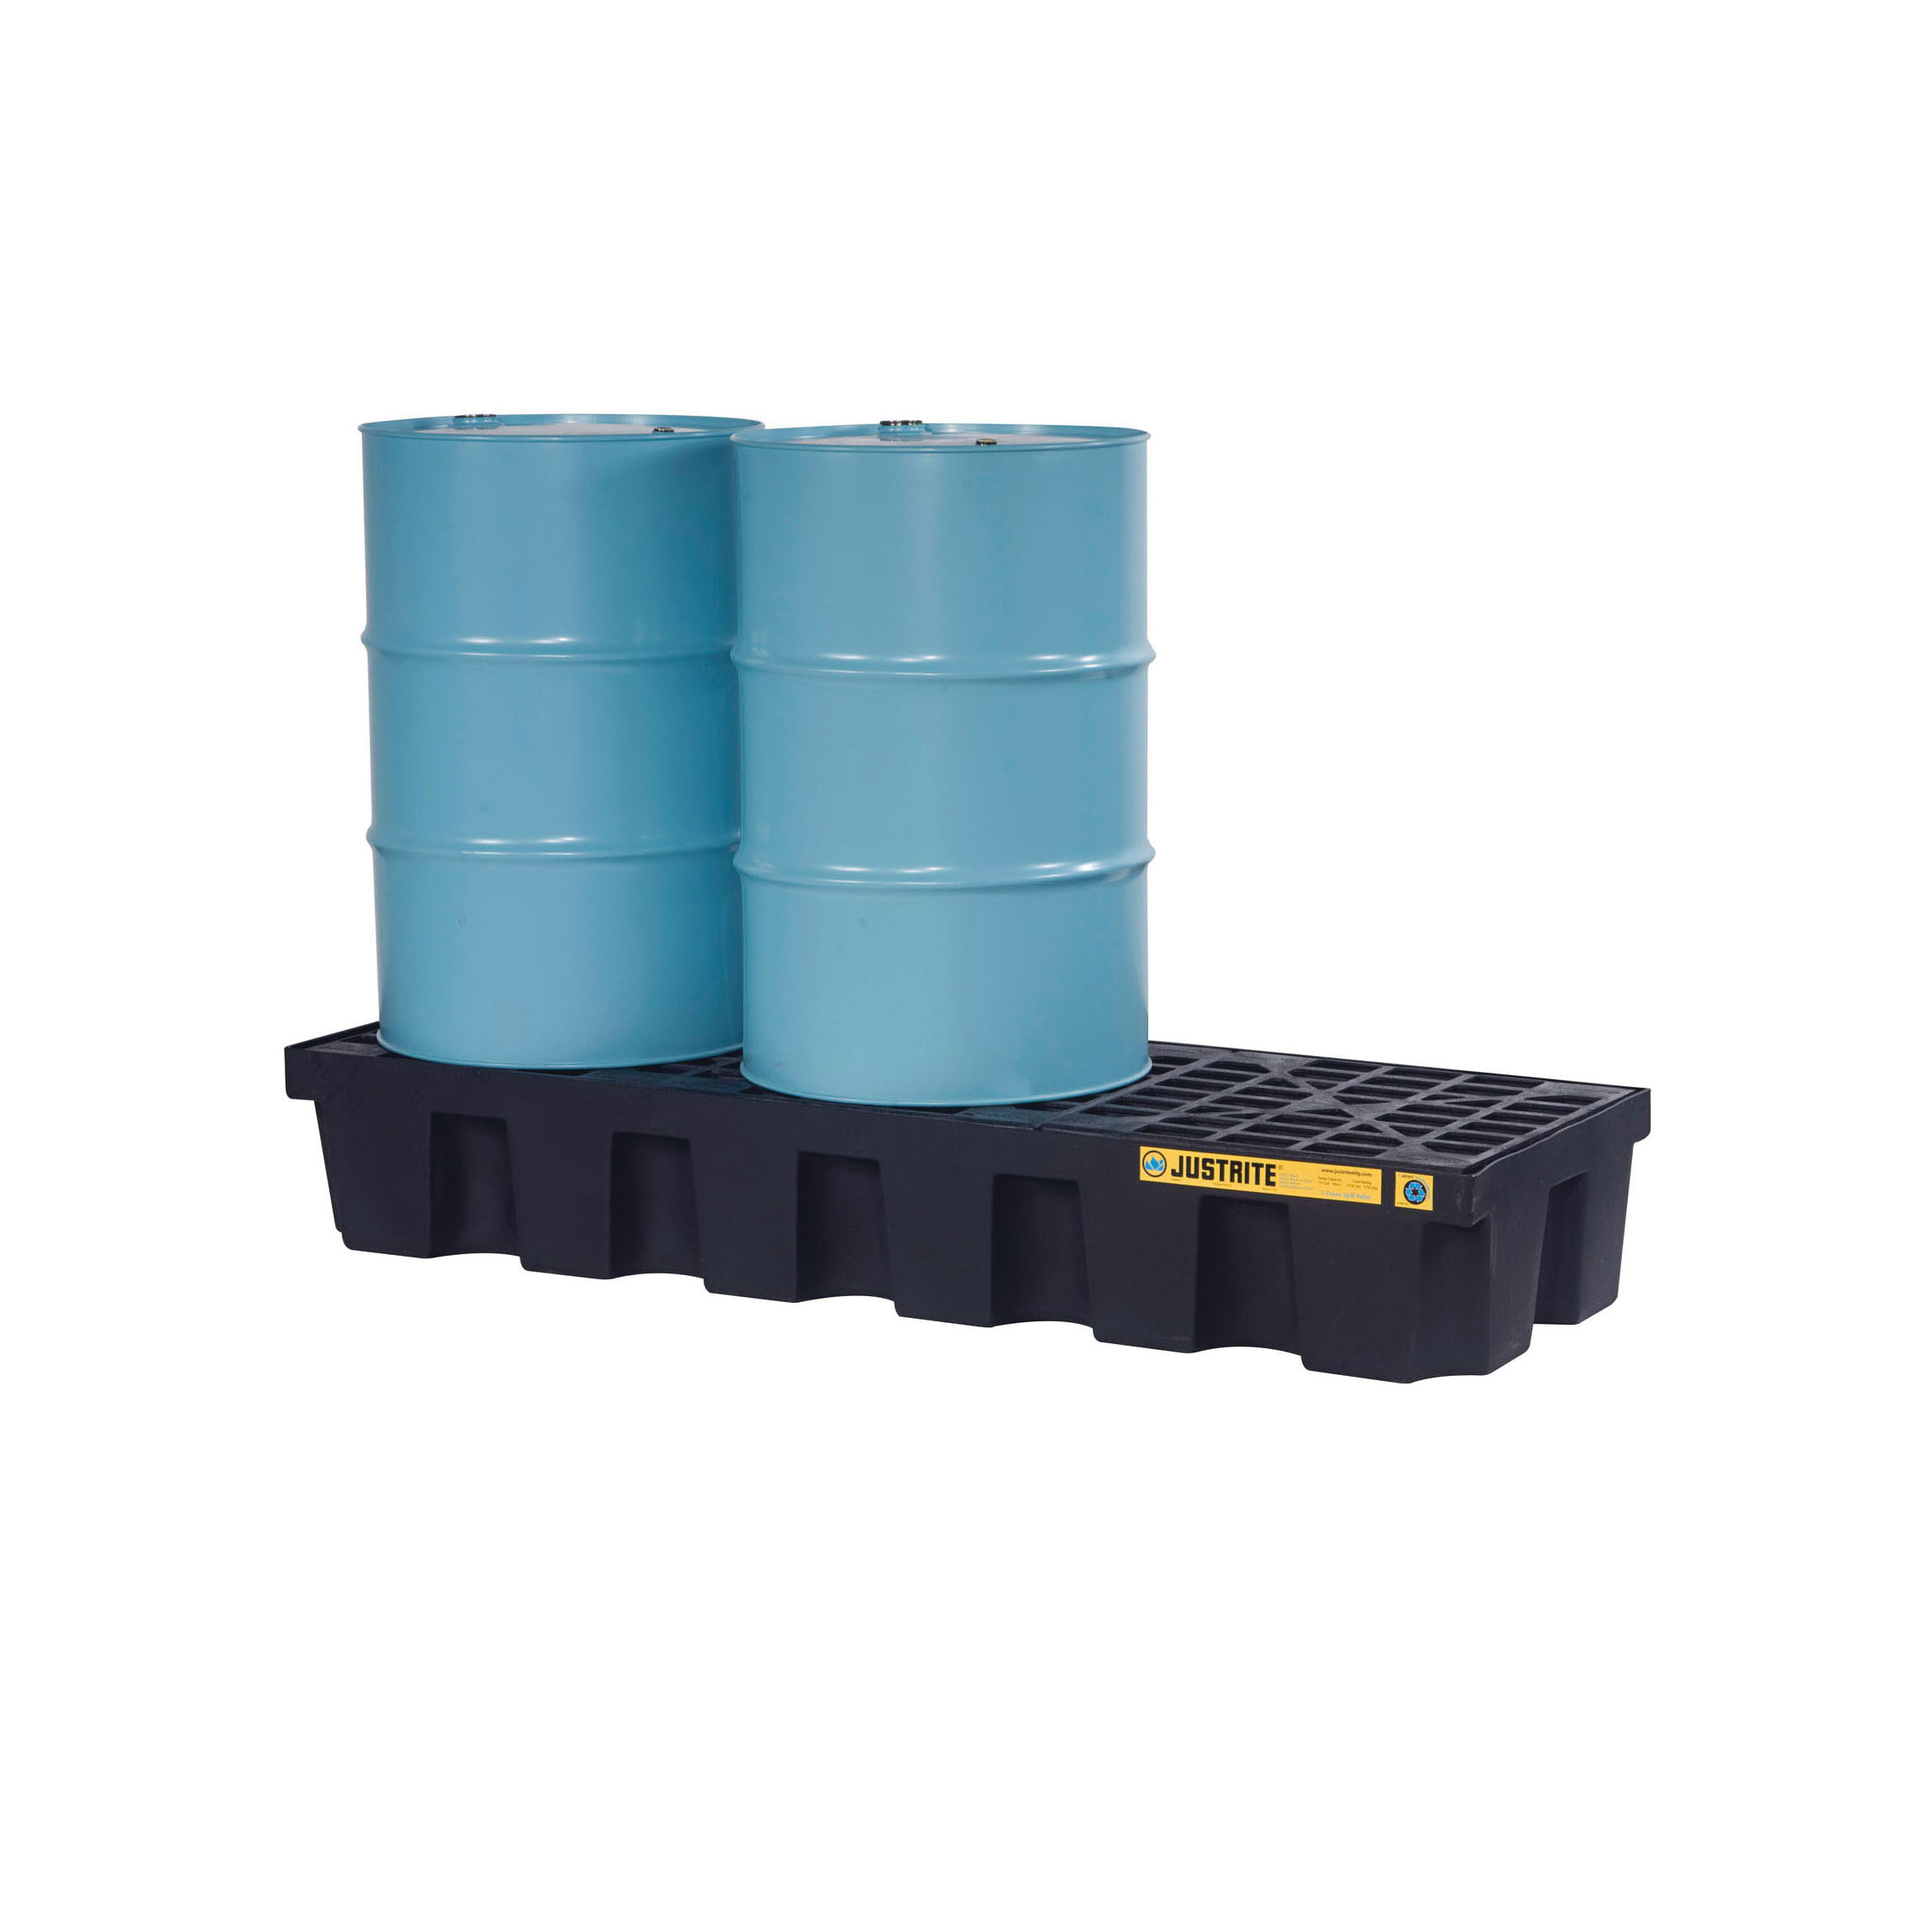 Justrite® 28629 EcoPolyBlend™ Spill Control Pallet With Drain, 3 Drums, 75 gal Spill, 3750 lb Load, 100% Recycled Polyethylene